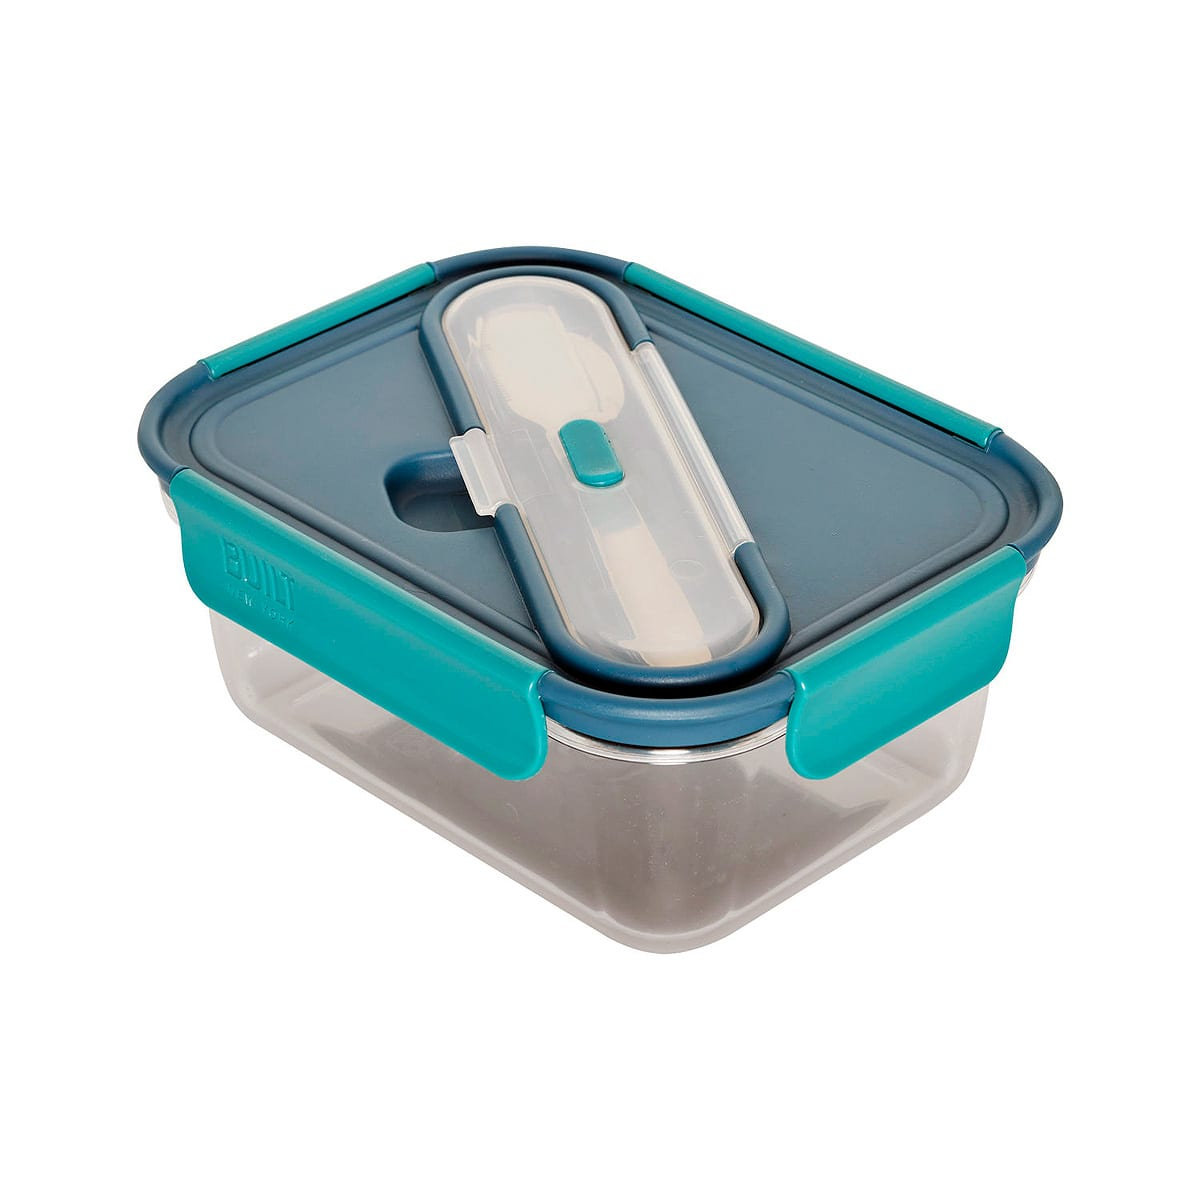 5 piece Bento Plastic Lunch Container with full-size utensils made of solid 18/10 Stainless Steel adn  break-resistant polypropylene lid that locks in place.